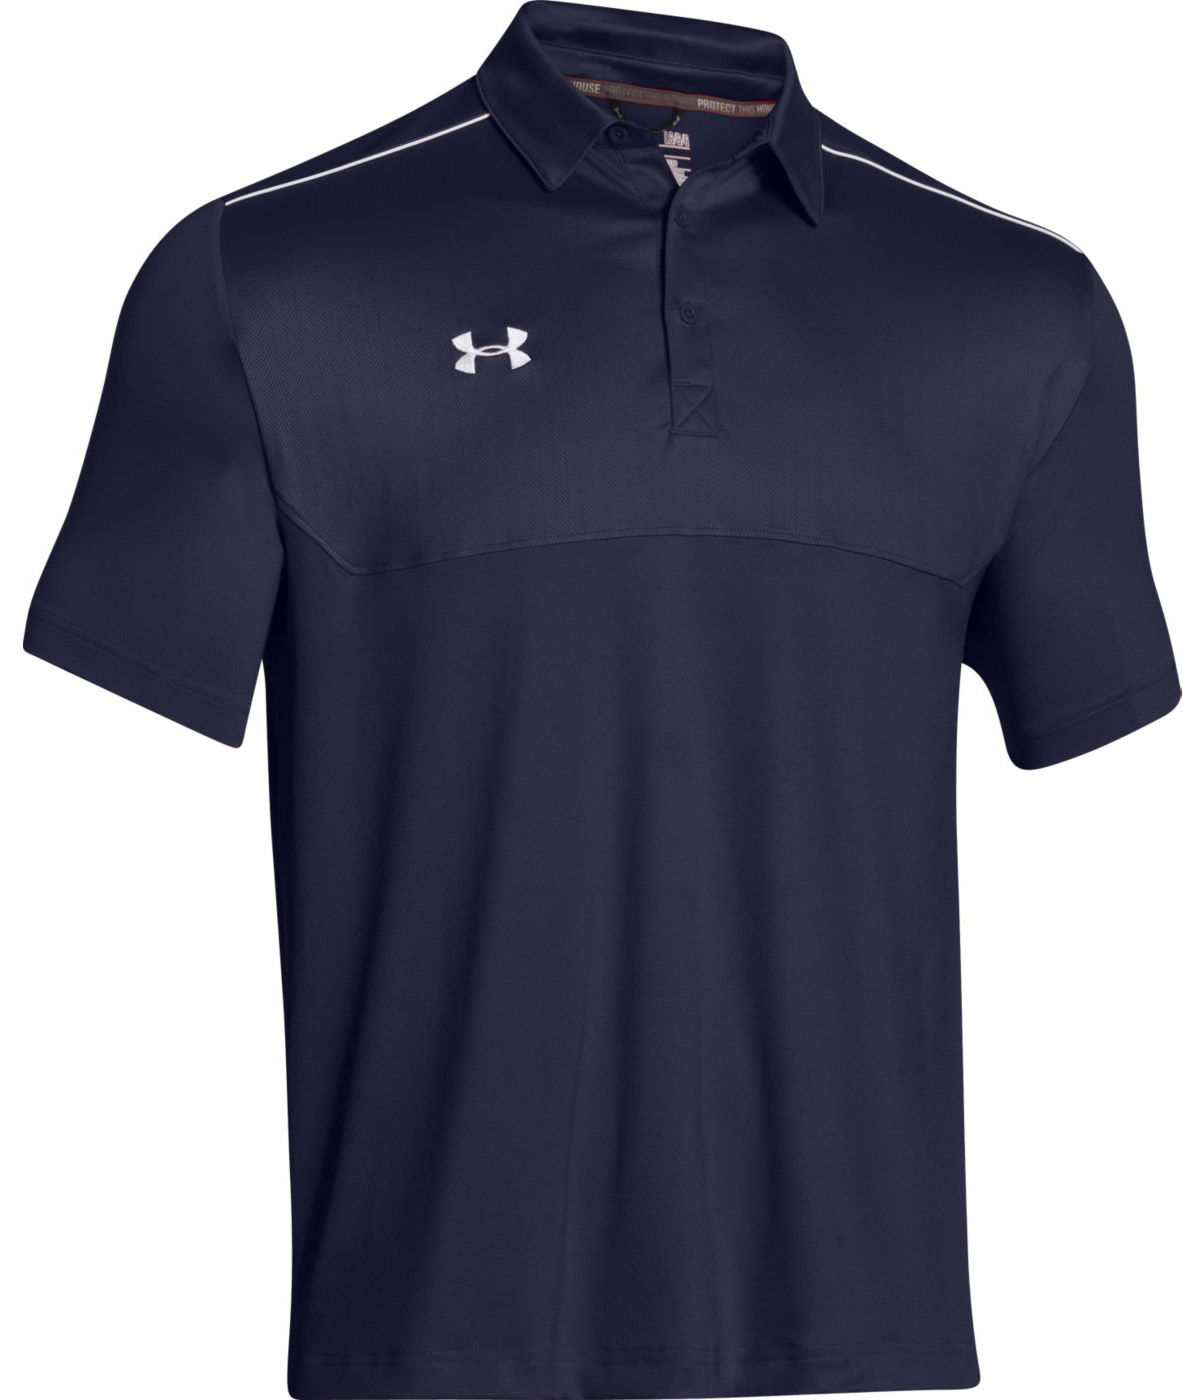 Under armour ultimate men 39 s polo shirt for Under armour embroidered polo shirts